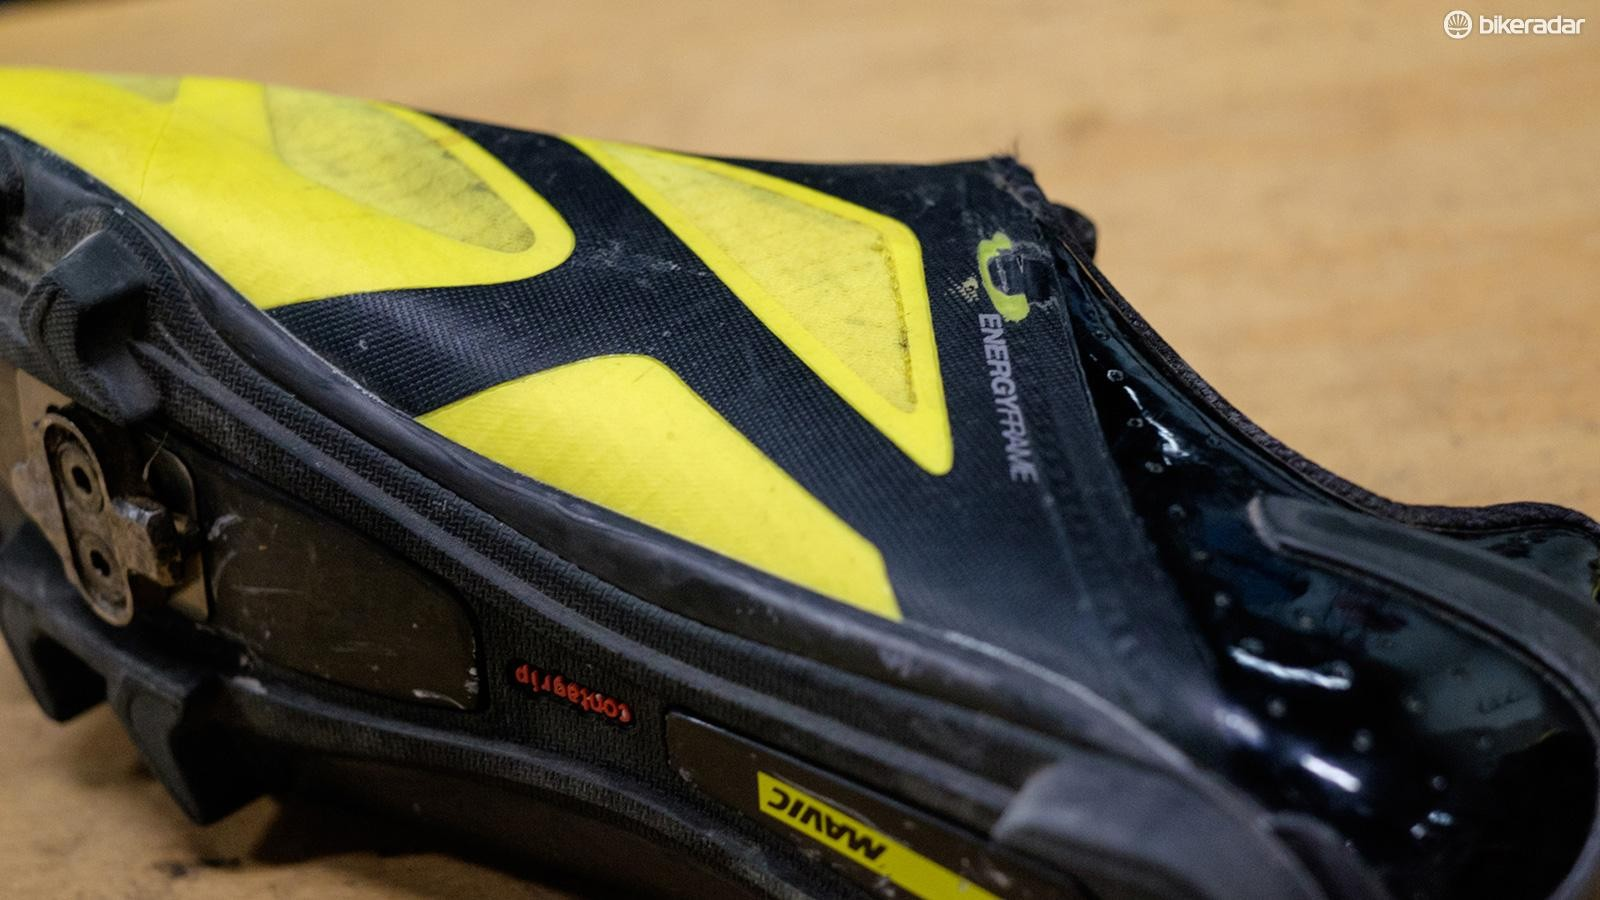 Unfortunately the inside of each shoe suffered from crank rub